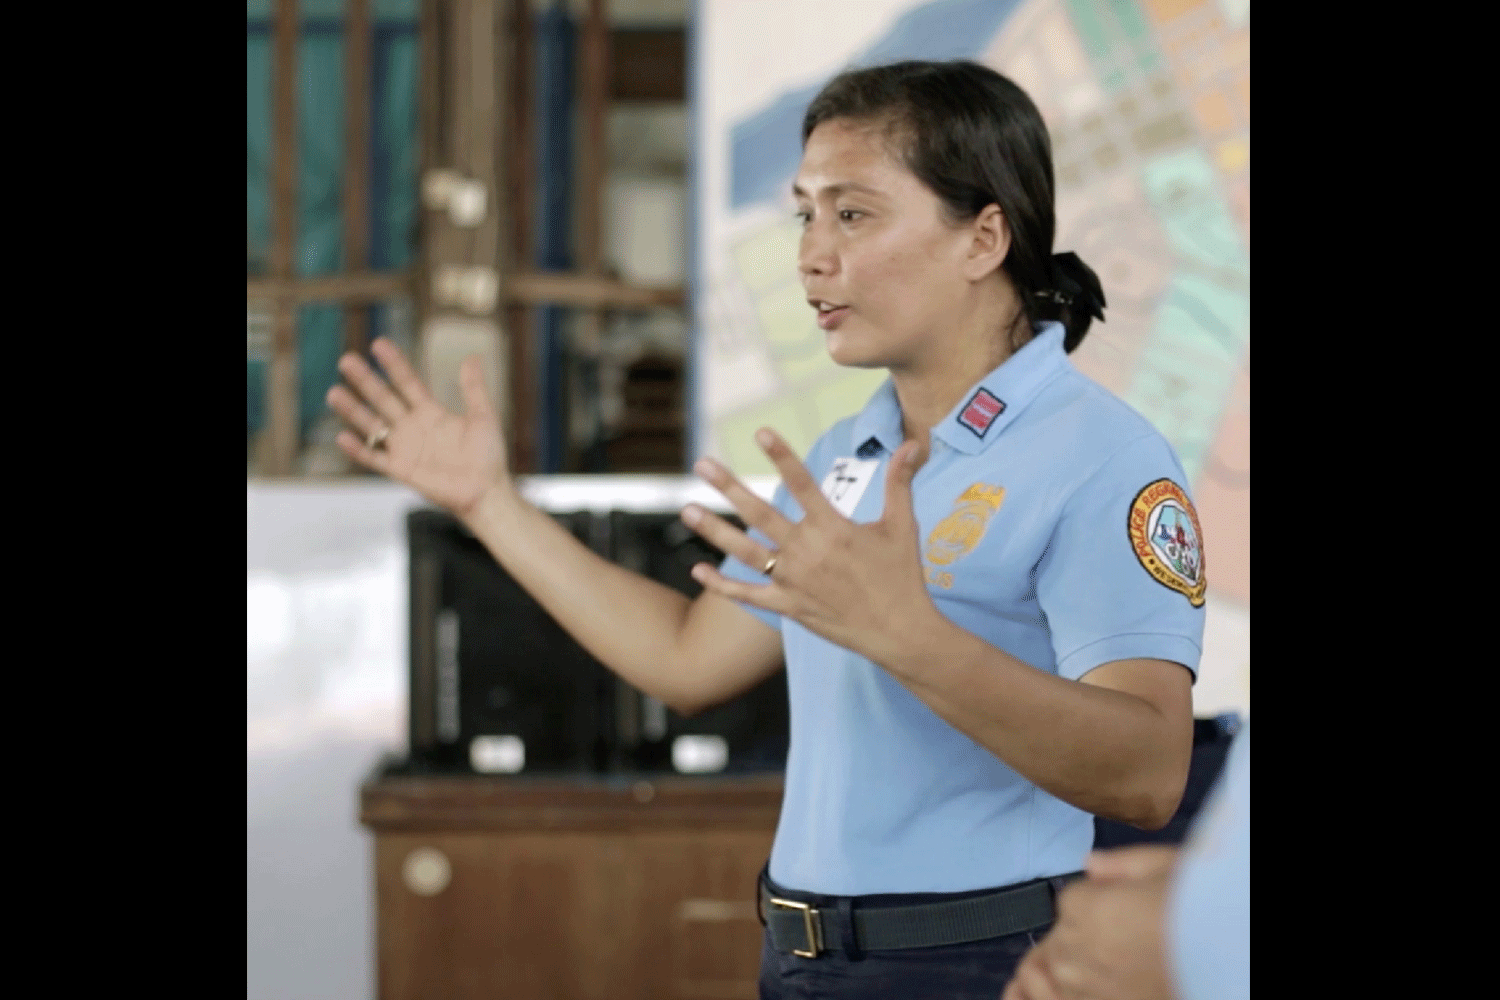 Meet TJ. She is not your average policewoman. She sees the good in people, and has gone out of her way to understand and protect children in conflict with the law.